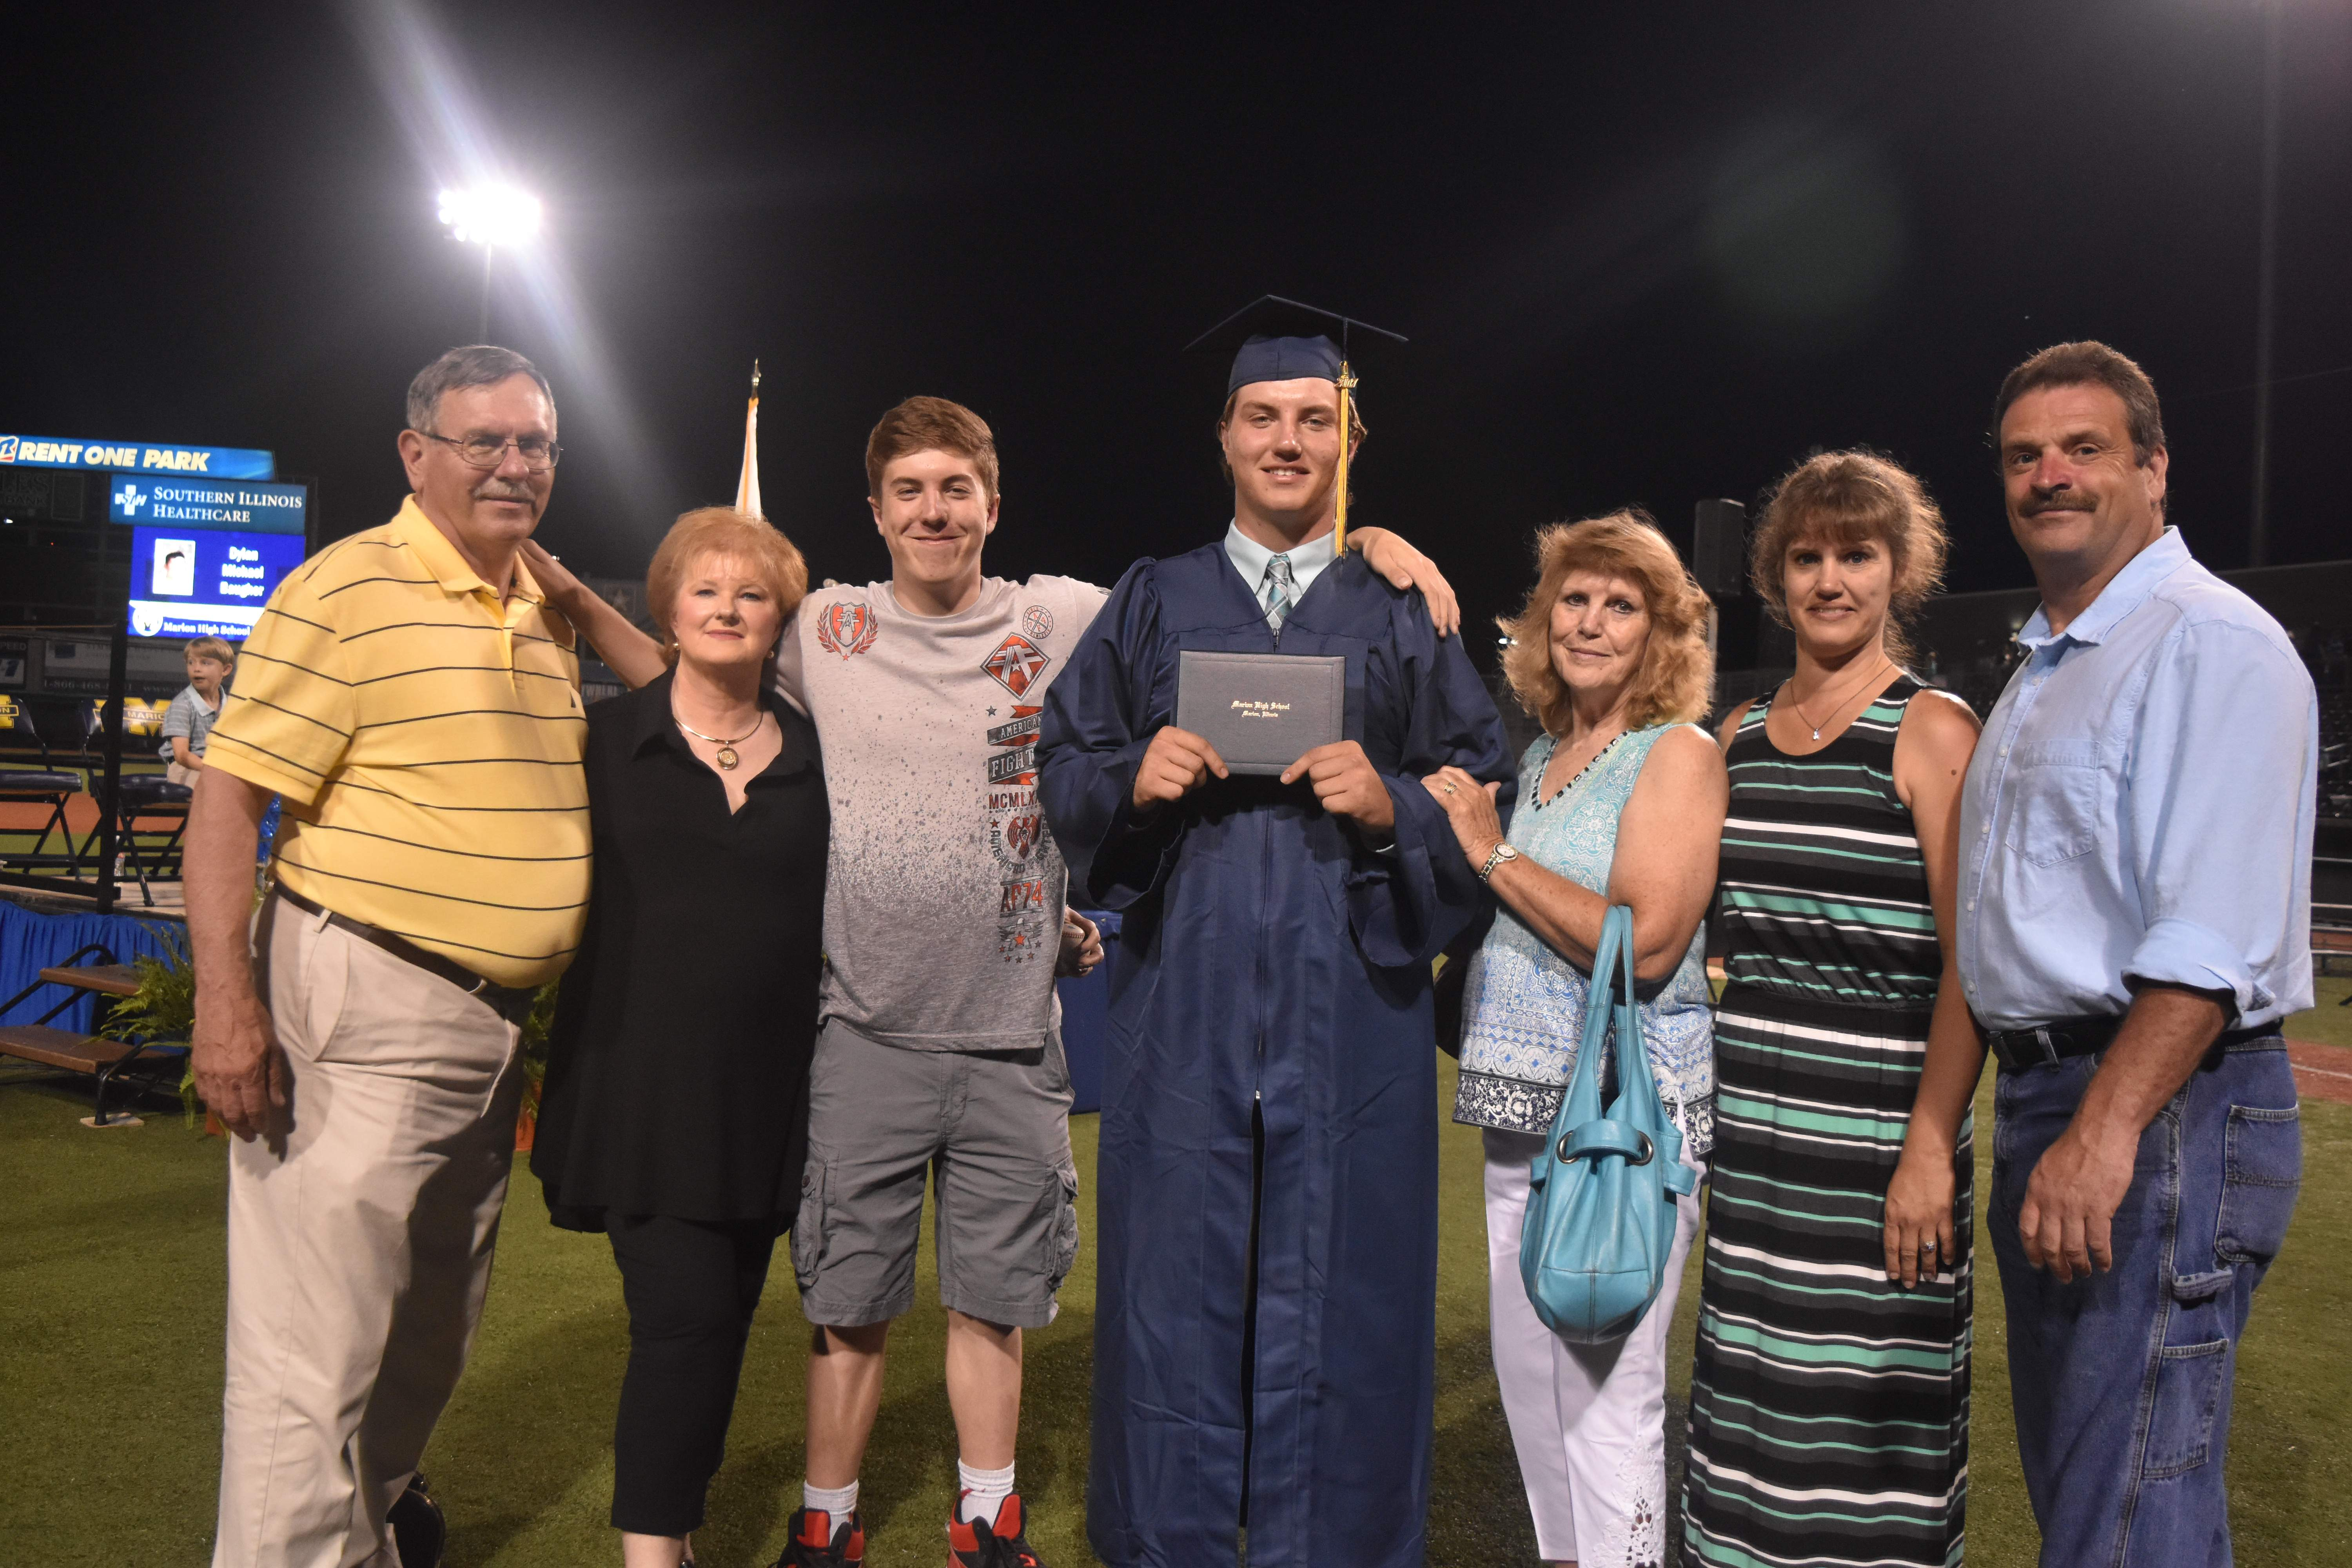 The Blaise family gathers after MHS graduation. Pictured from left: David Blaise, Cathy Blaise, Nick Blaise, Alex Blaise, Susan Smith, Angela Powell and Bo Powell.